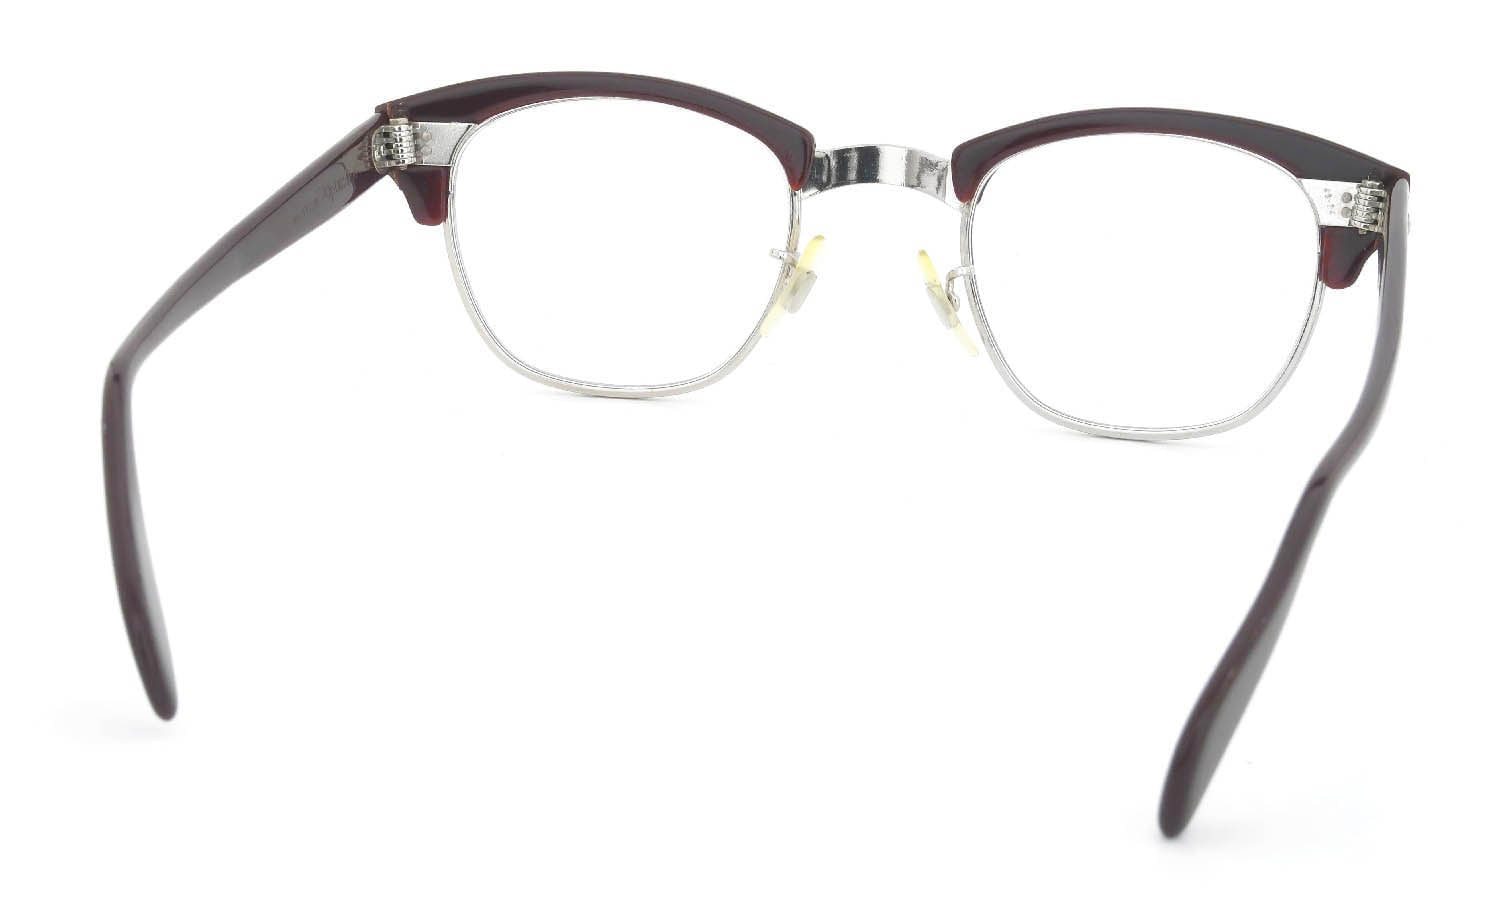 American Optical Vintage 1960s-1980s Brow Combination AO鋲 Brown/Silver 48-24